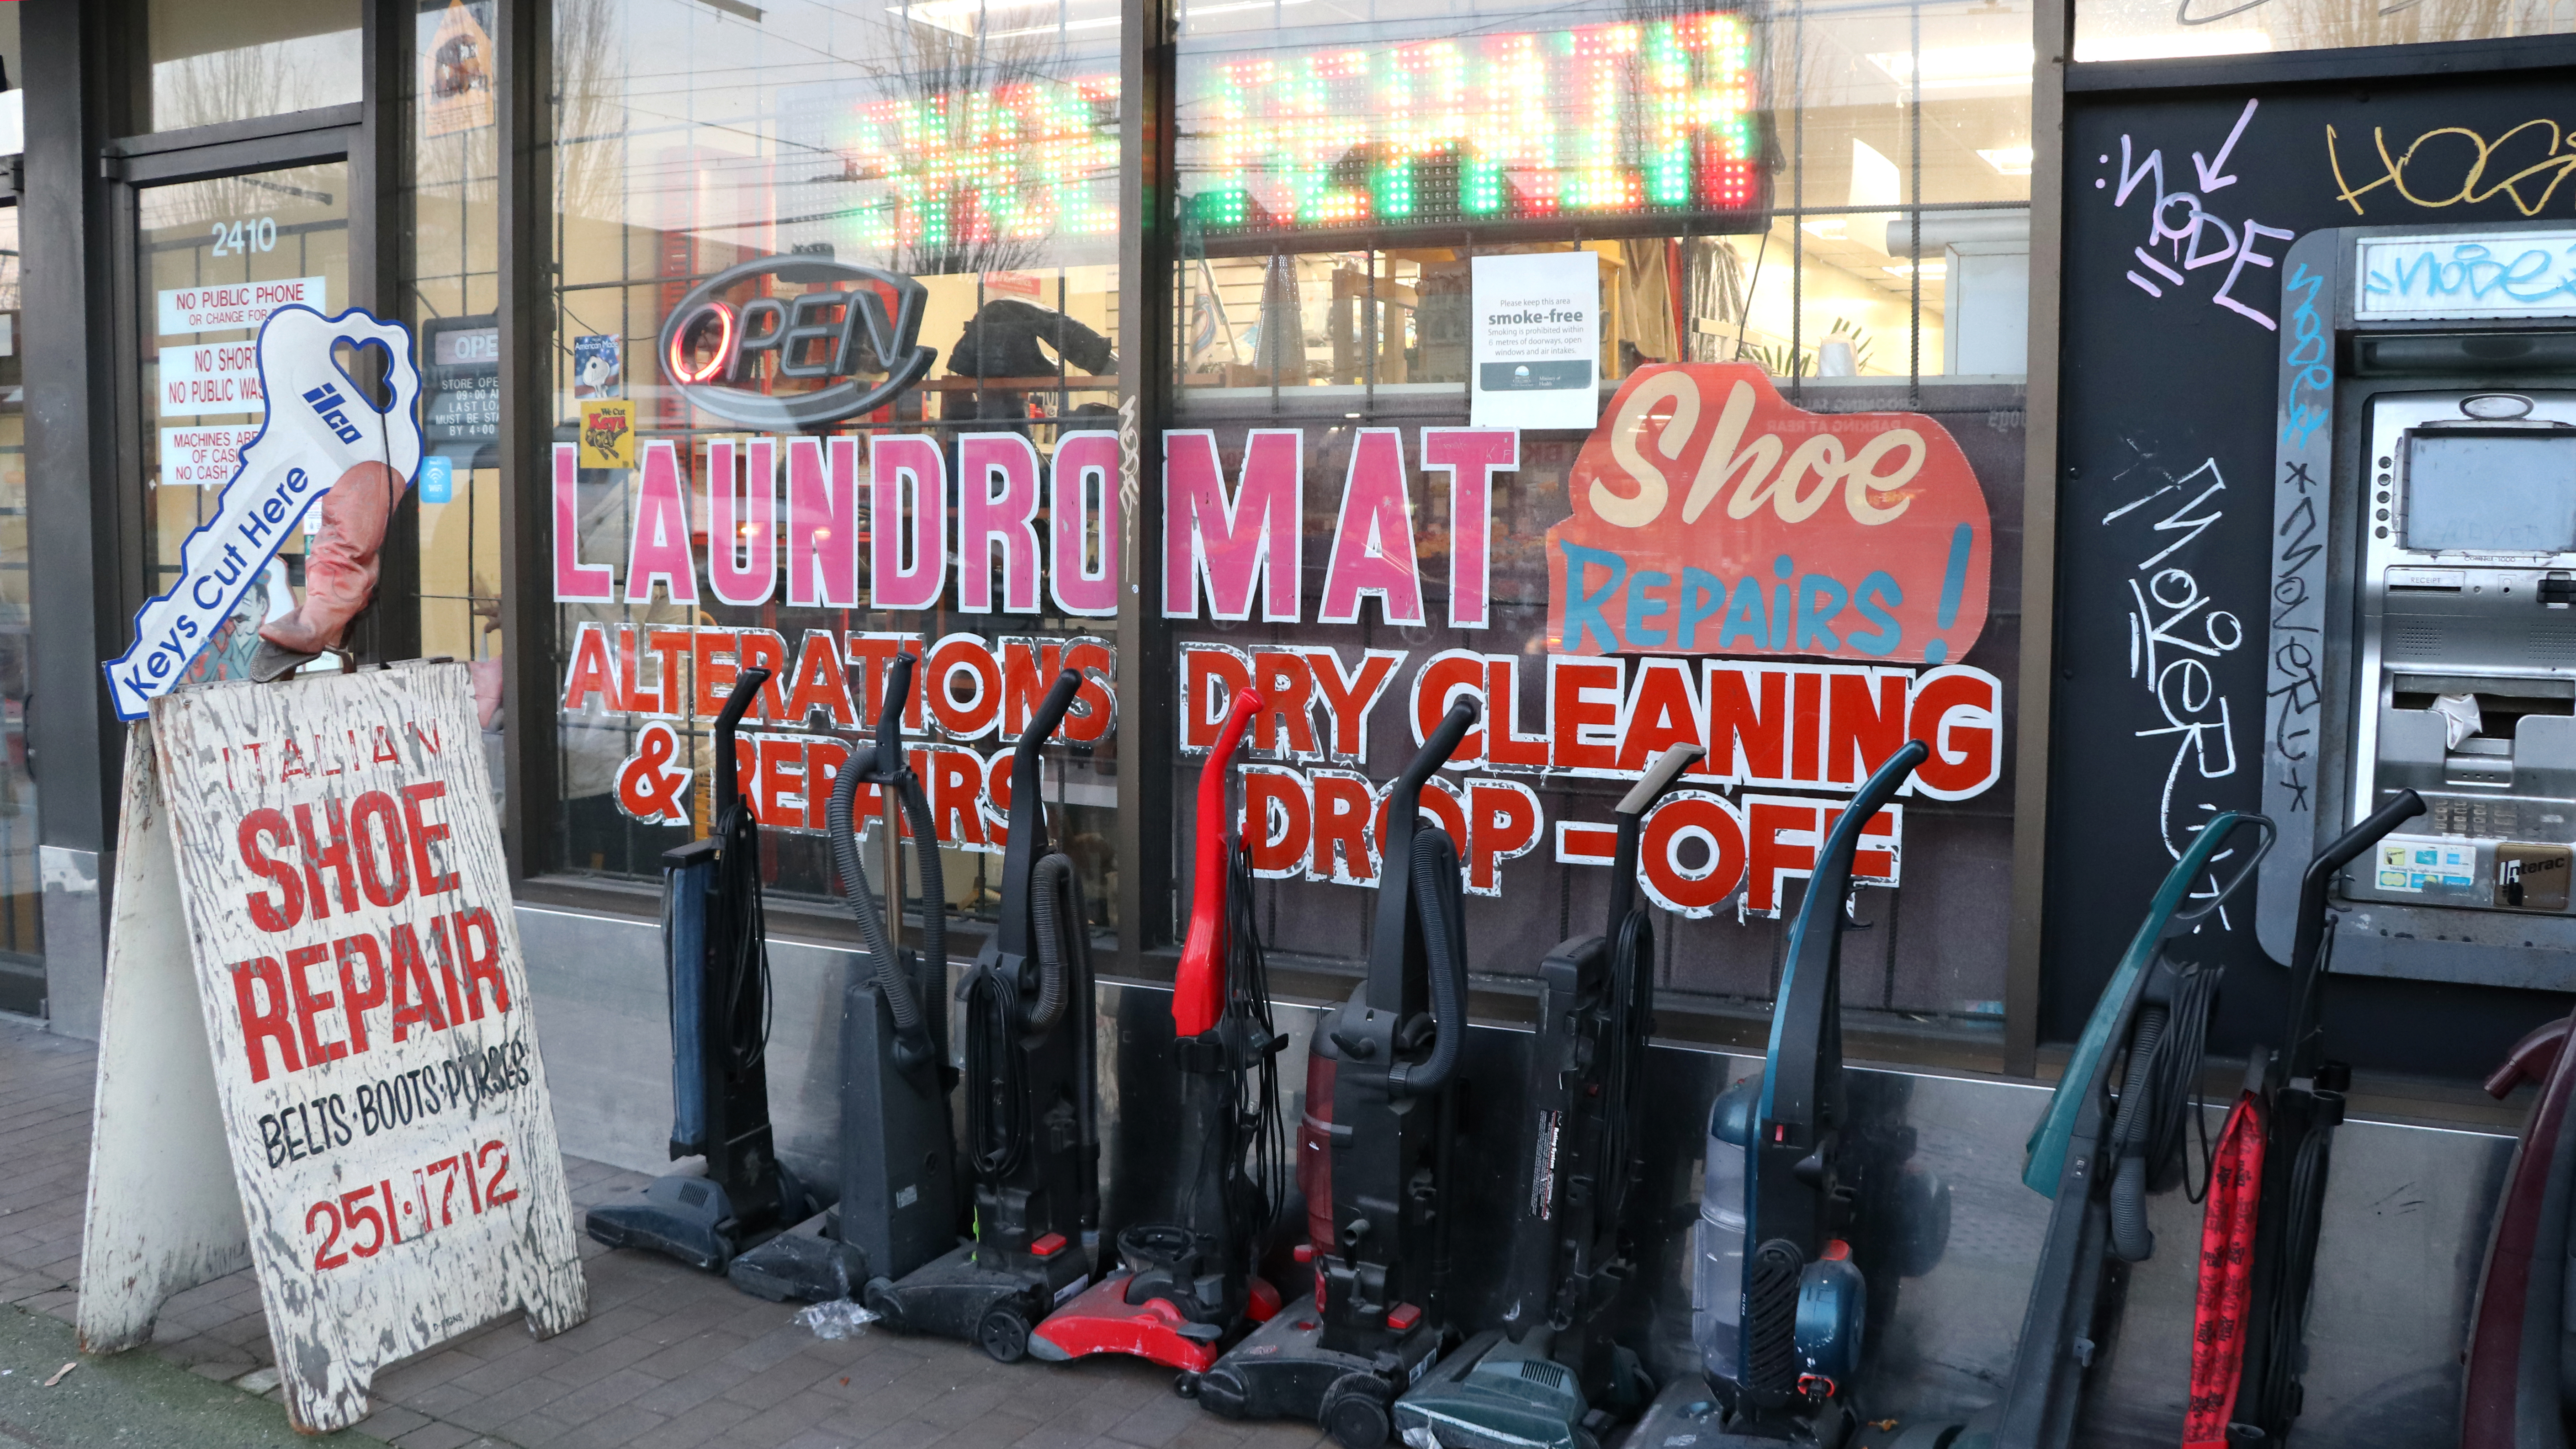 Laundromats have long offered additional services to help the business survive. (Maryse Zeidler/CBC)